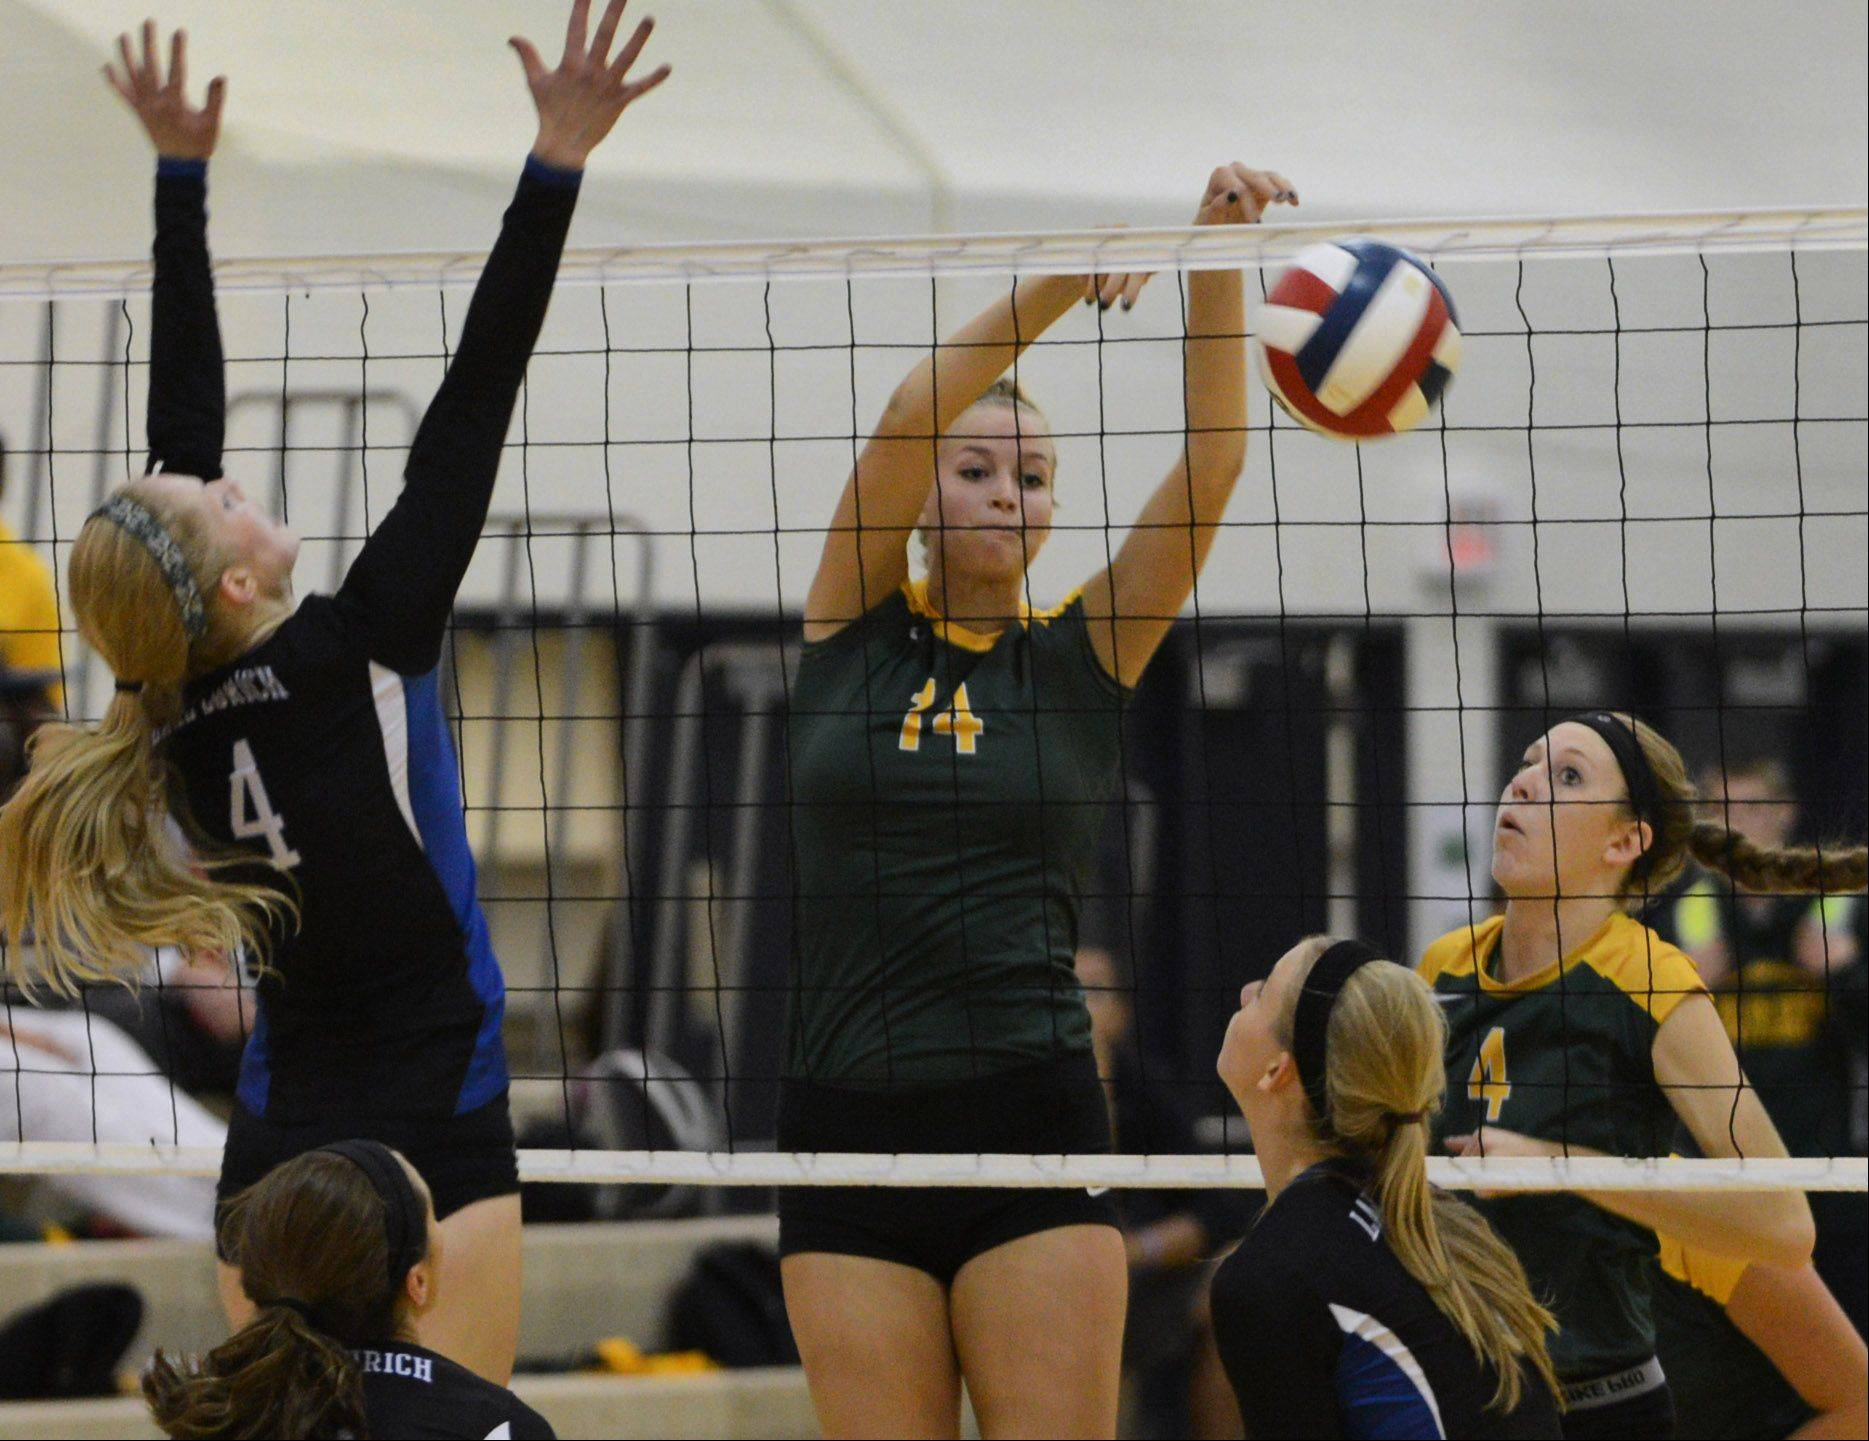 Stevenson's Kara Maleski (14) drops a shot to help her team win set one over Lake Zurich during Wednesday's volleyball game in Lincolnshire.